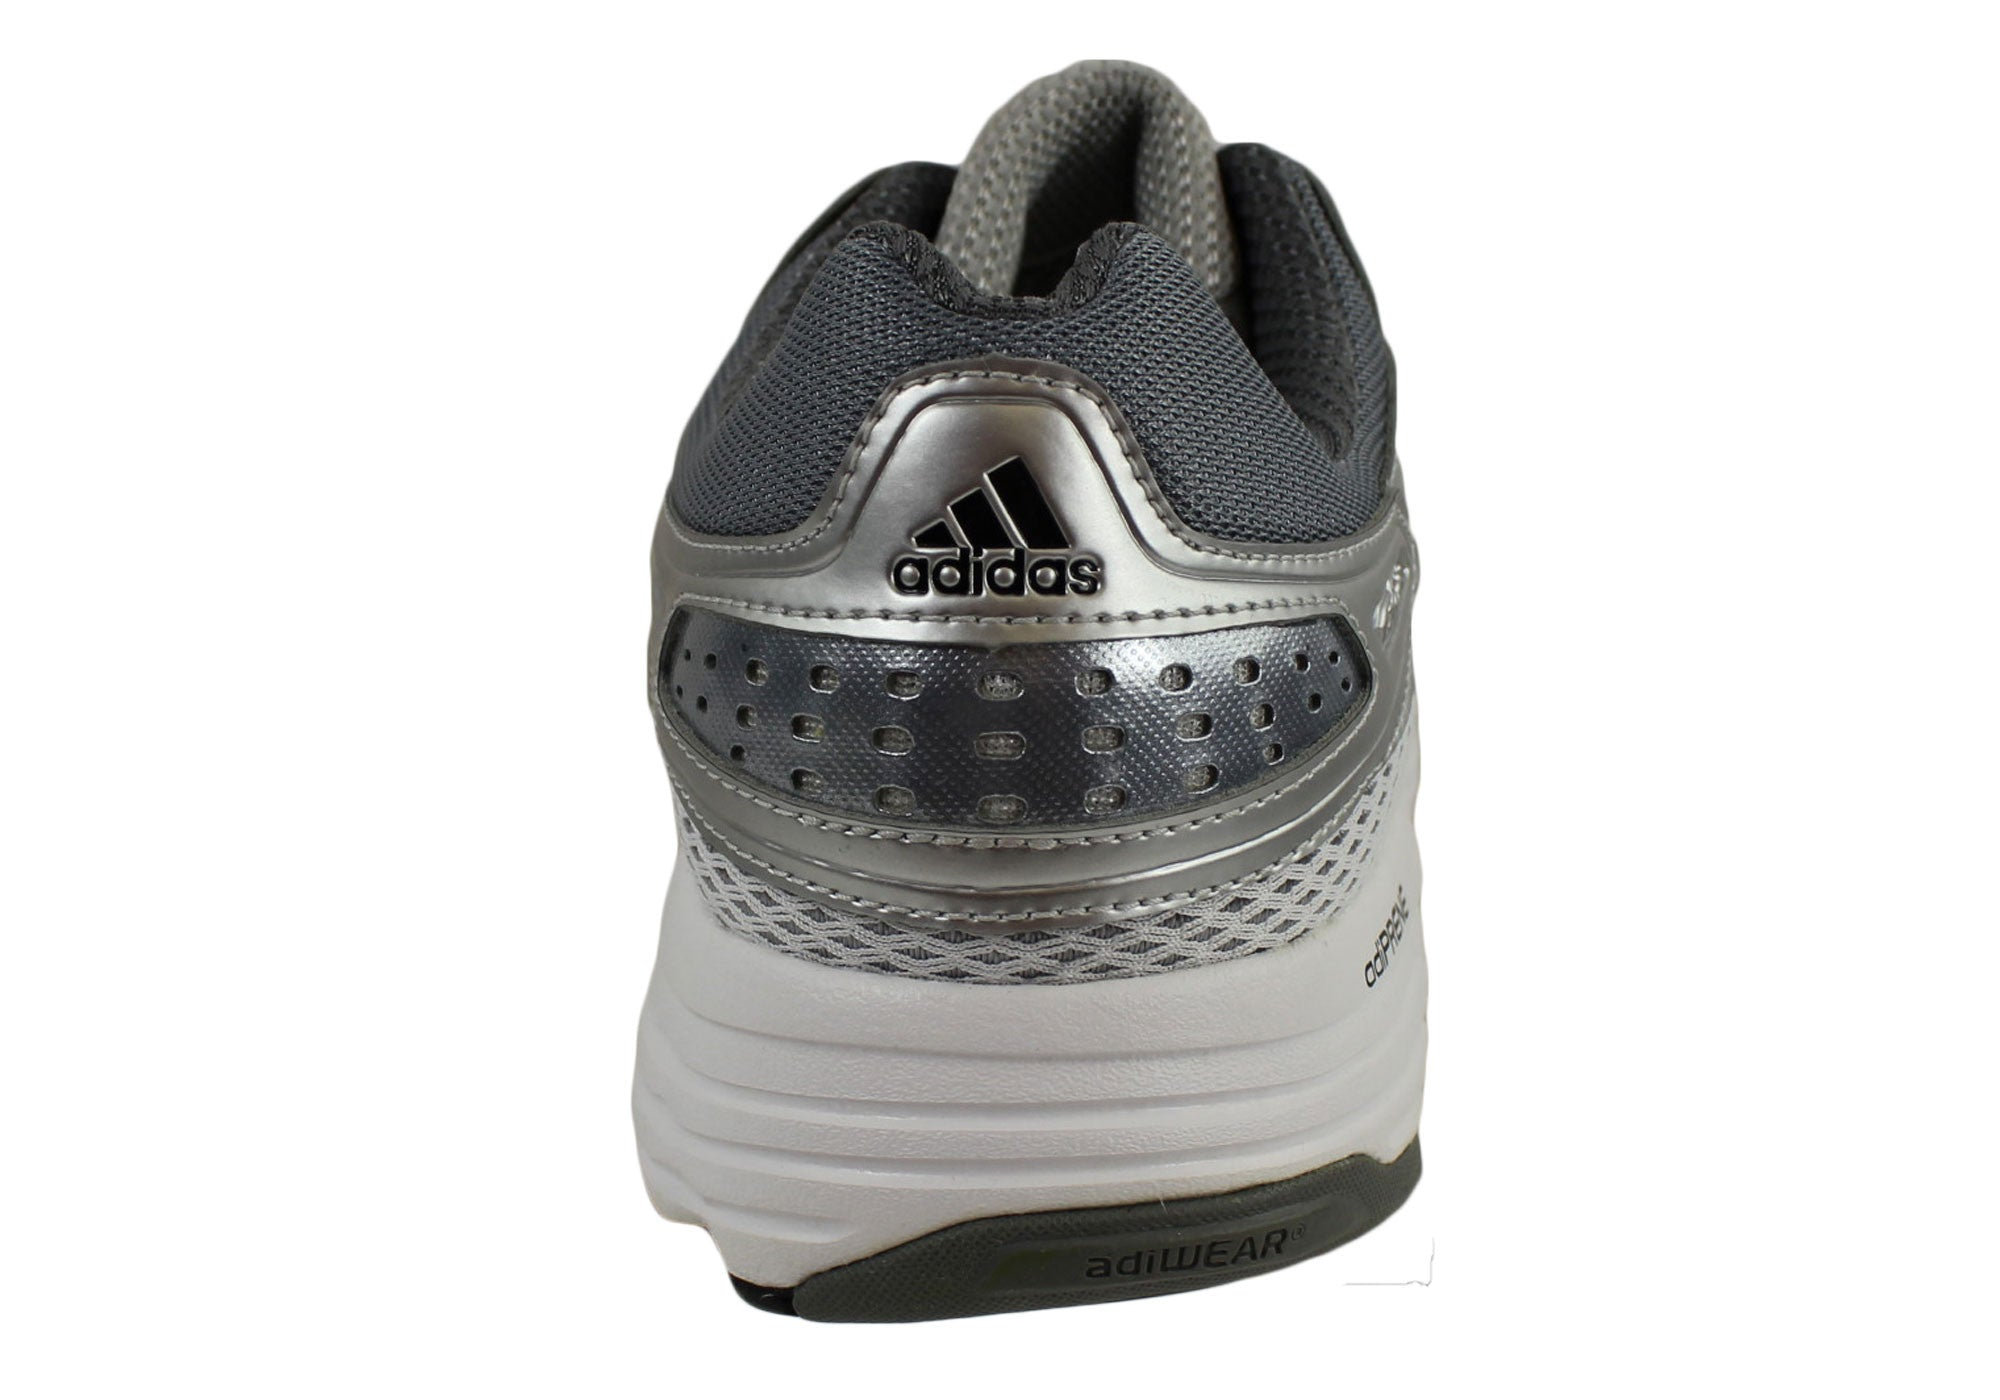 Adidas Falcon Elite M Mens Running Shoes (Standard Width)